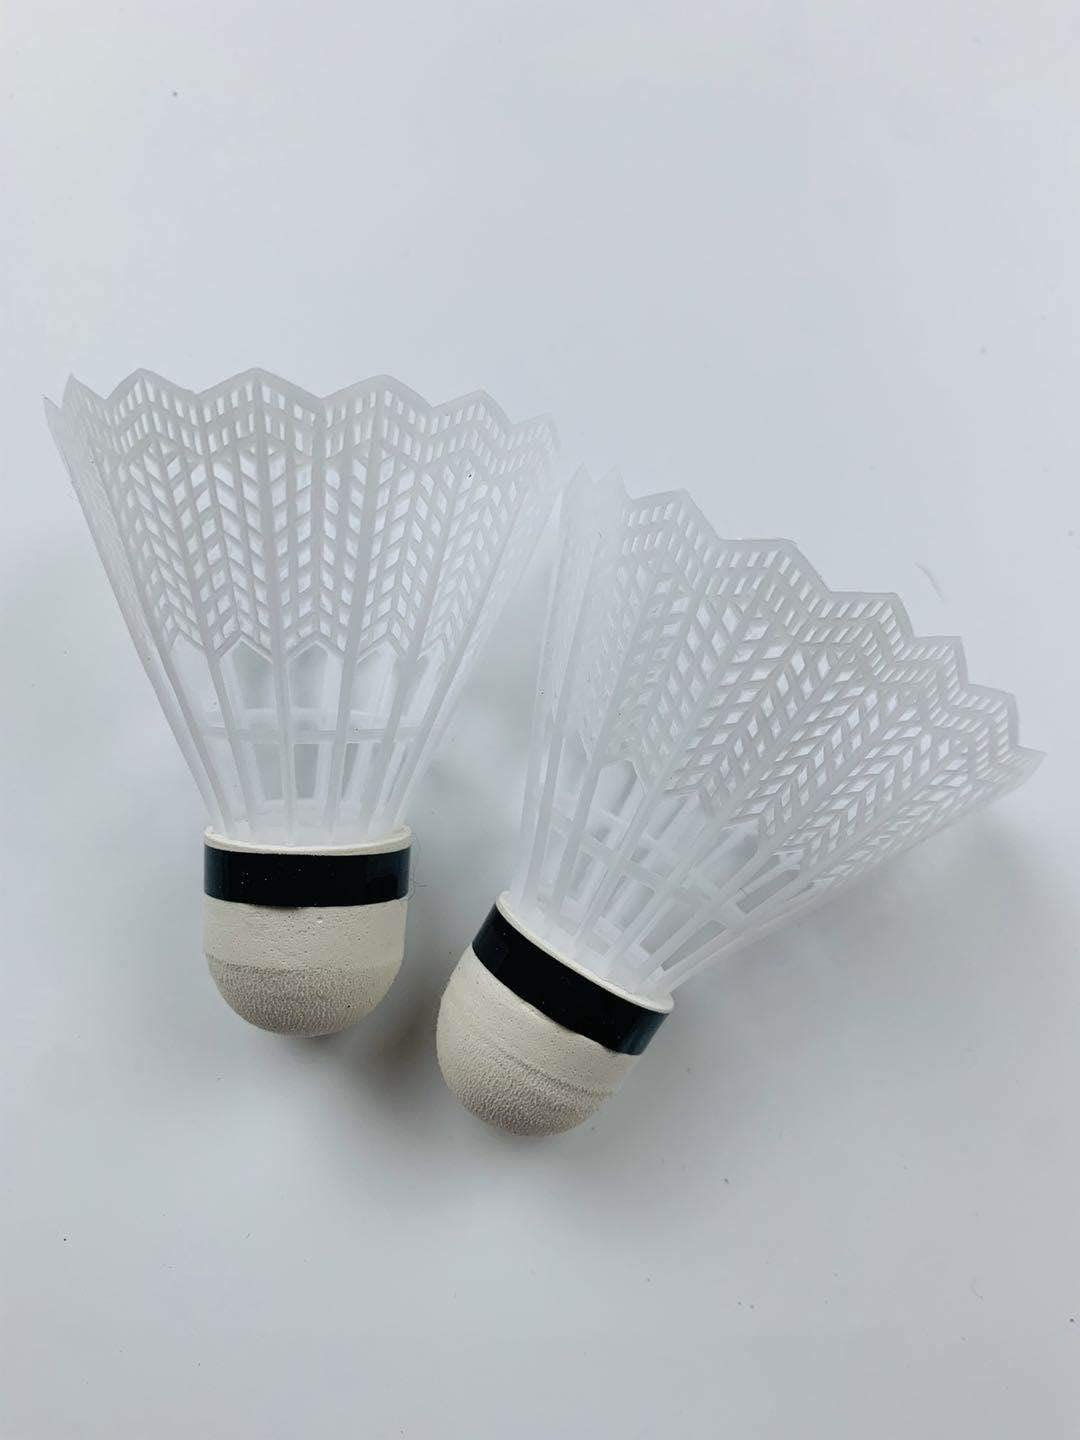 Racquet Sports Sets Badminton Complete Sets, Badminton Sets, Portable Outdoor Classic Racquet Sports Badminton Combo Set Badminton Net System, Fun Lawn or Beach Game Sets for The Whole Family : Sports & Outdoors